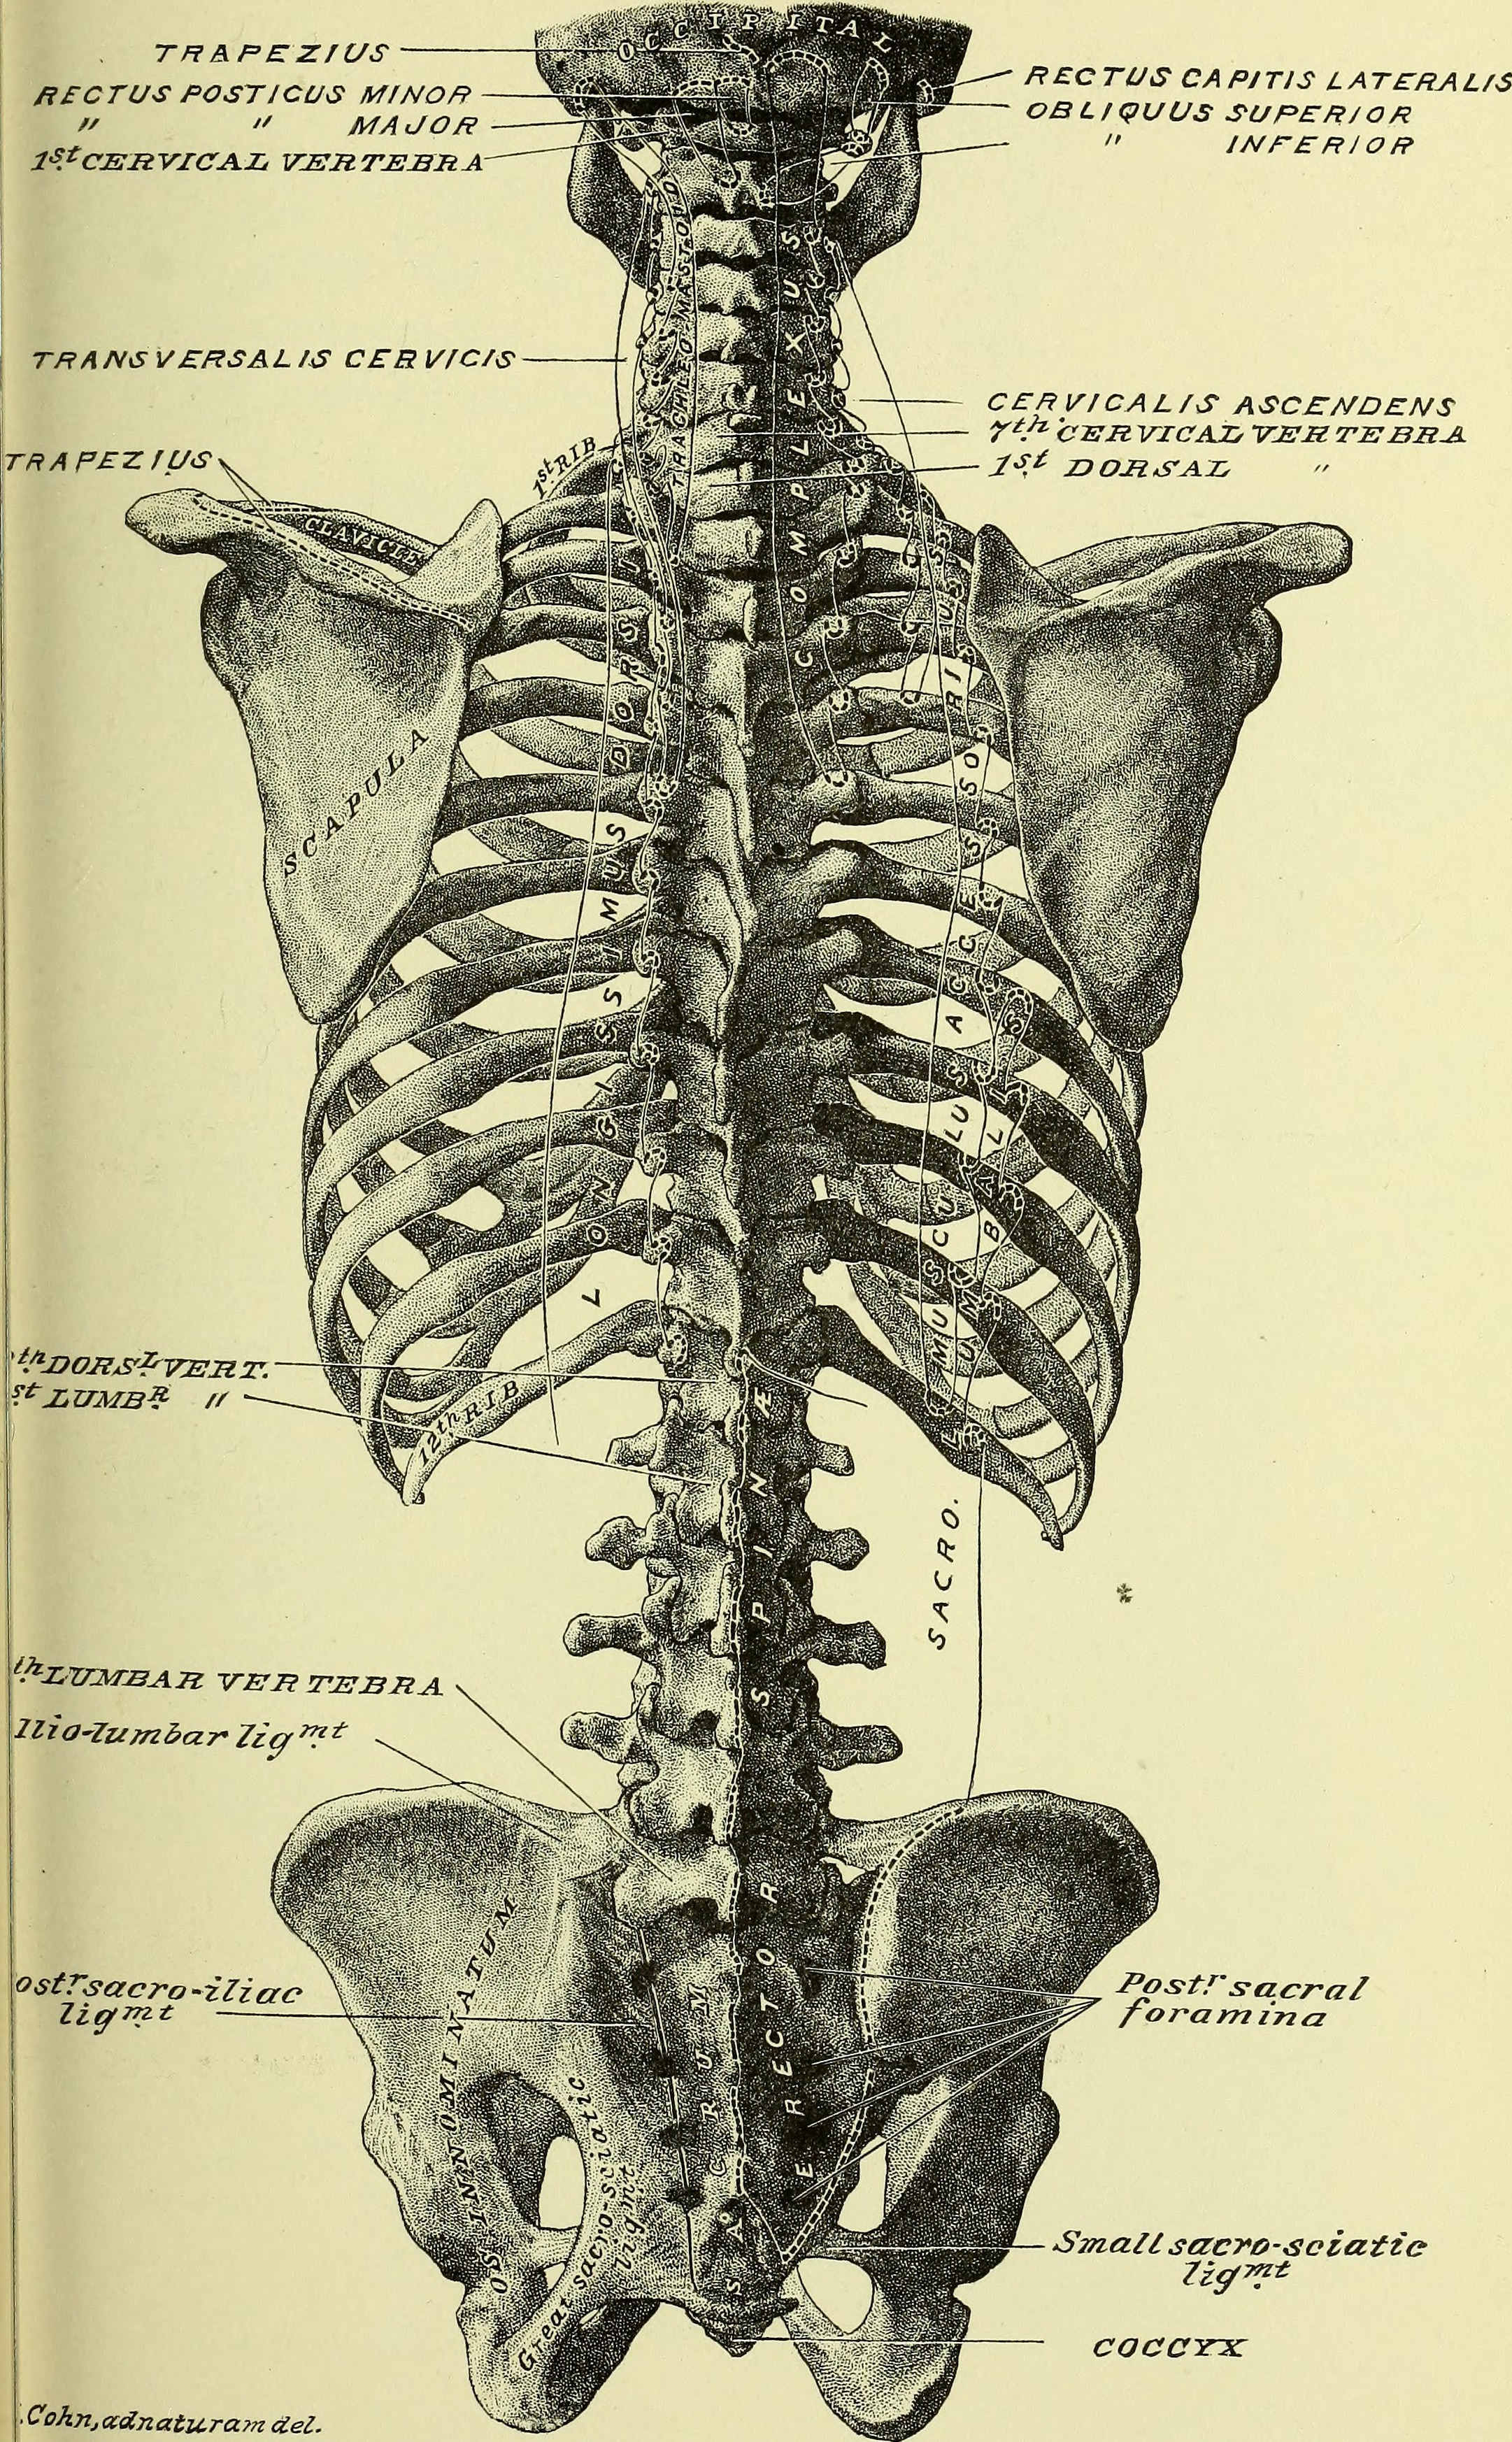 Illustration of a human spine and rib cage.